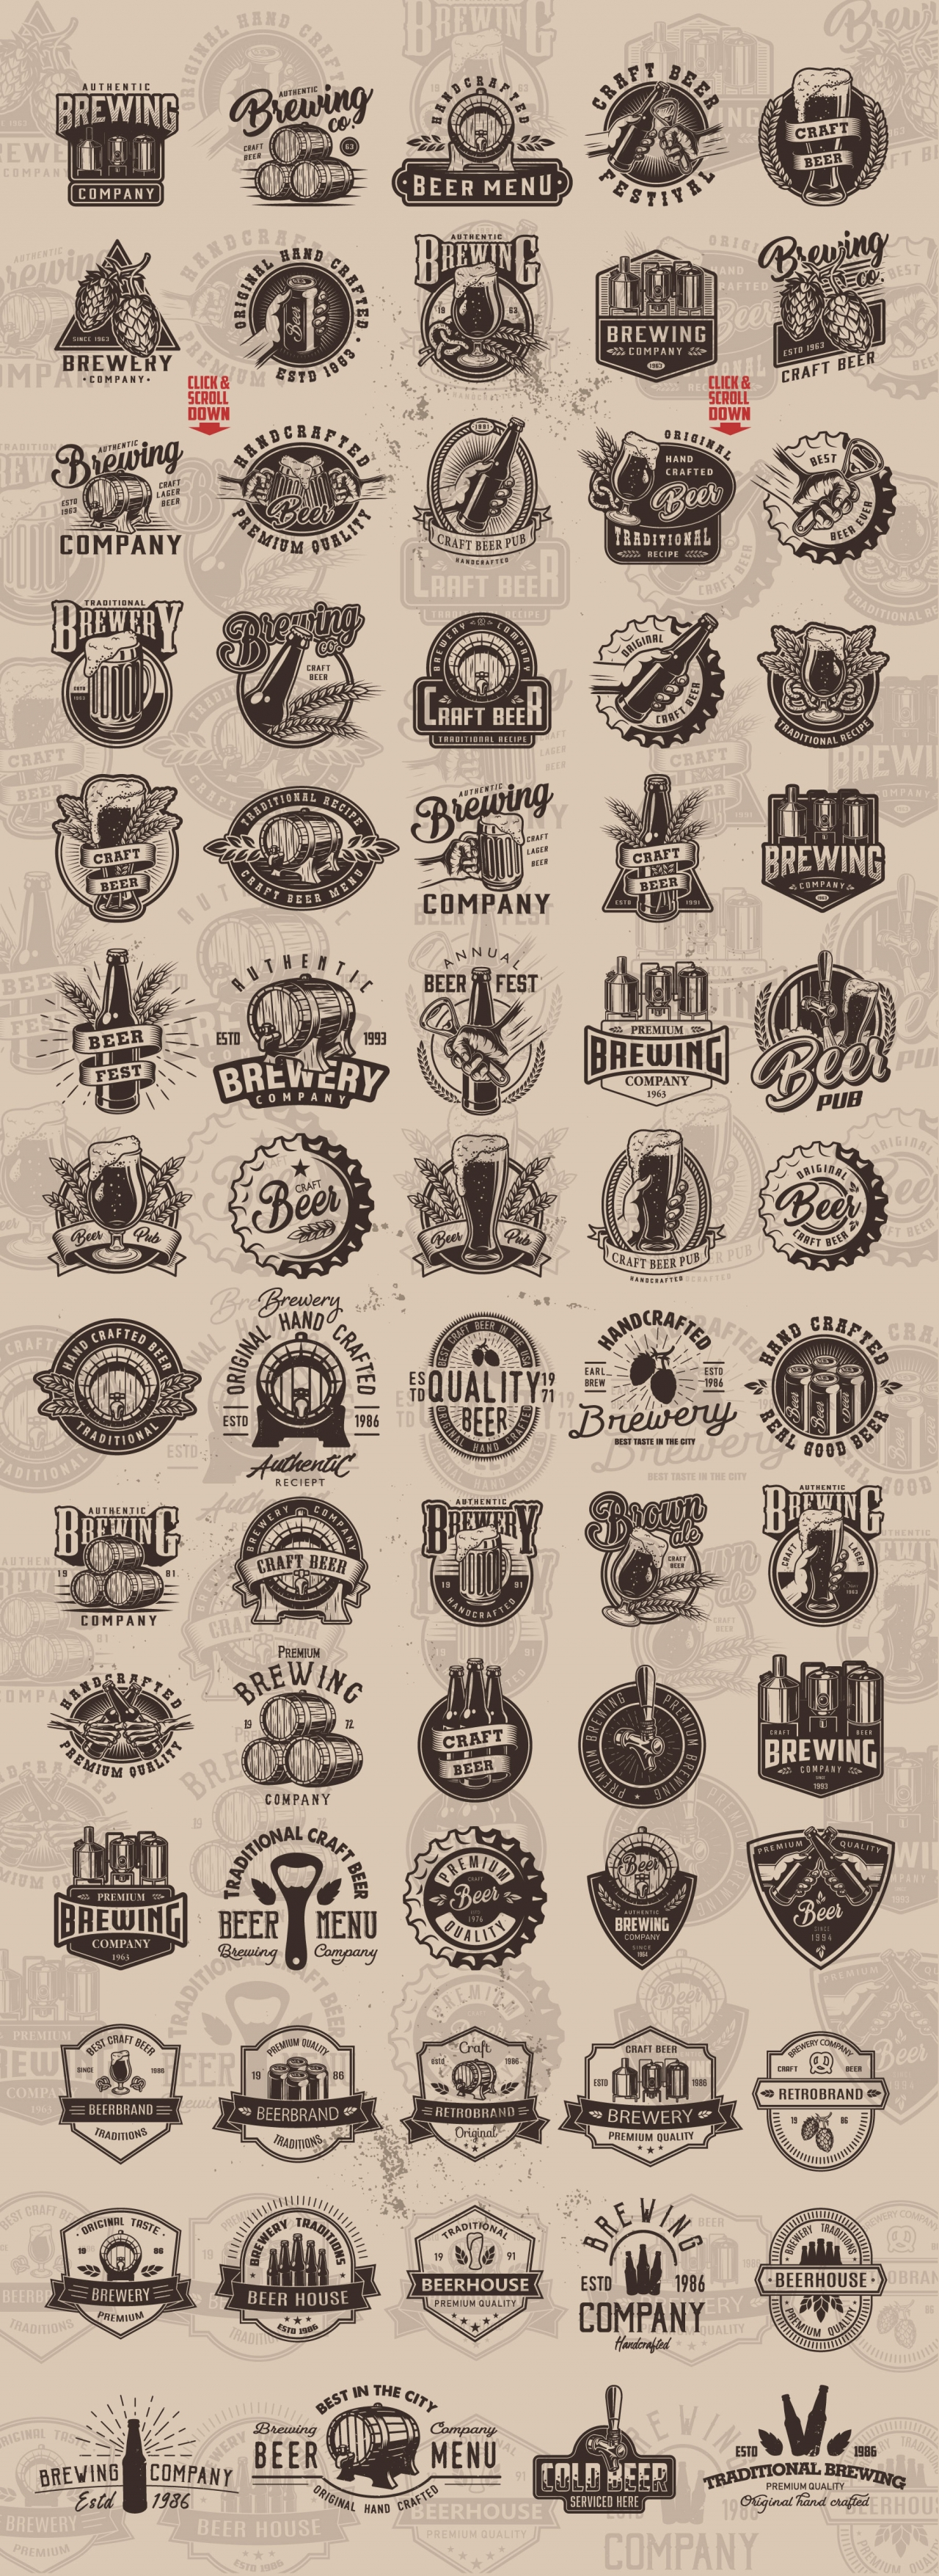 Vintage monochrome style beer designs big set with brewing emblems, badges, prints and labels on light background